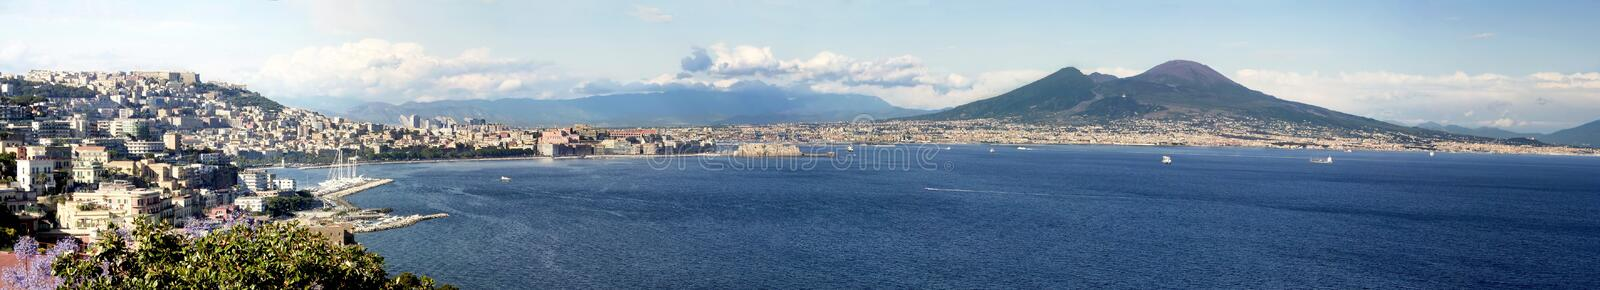 Gulf of Naples. Panoramic view of the gulf of Naples with mount Vesuvius in the background stock photos